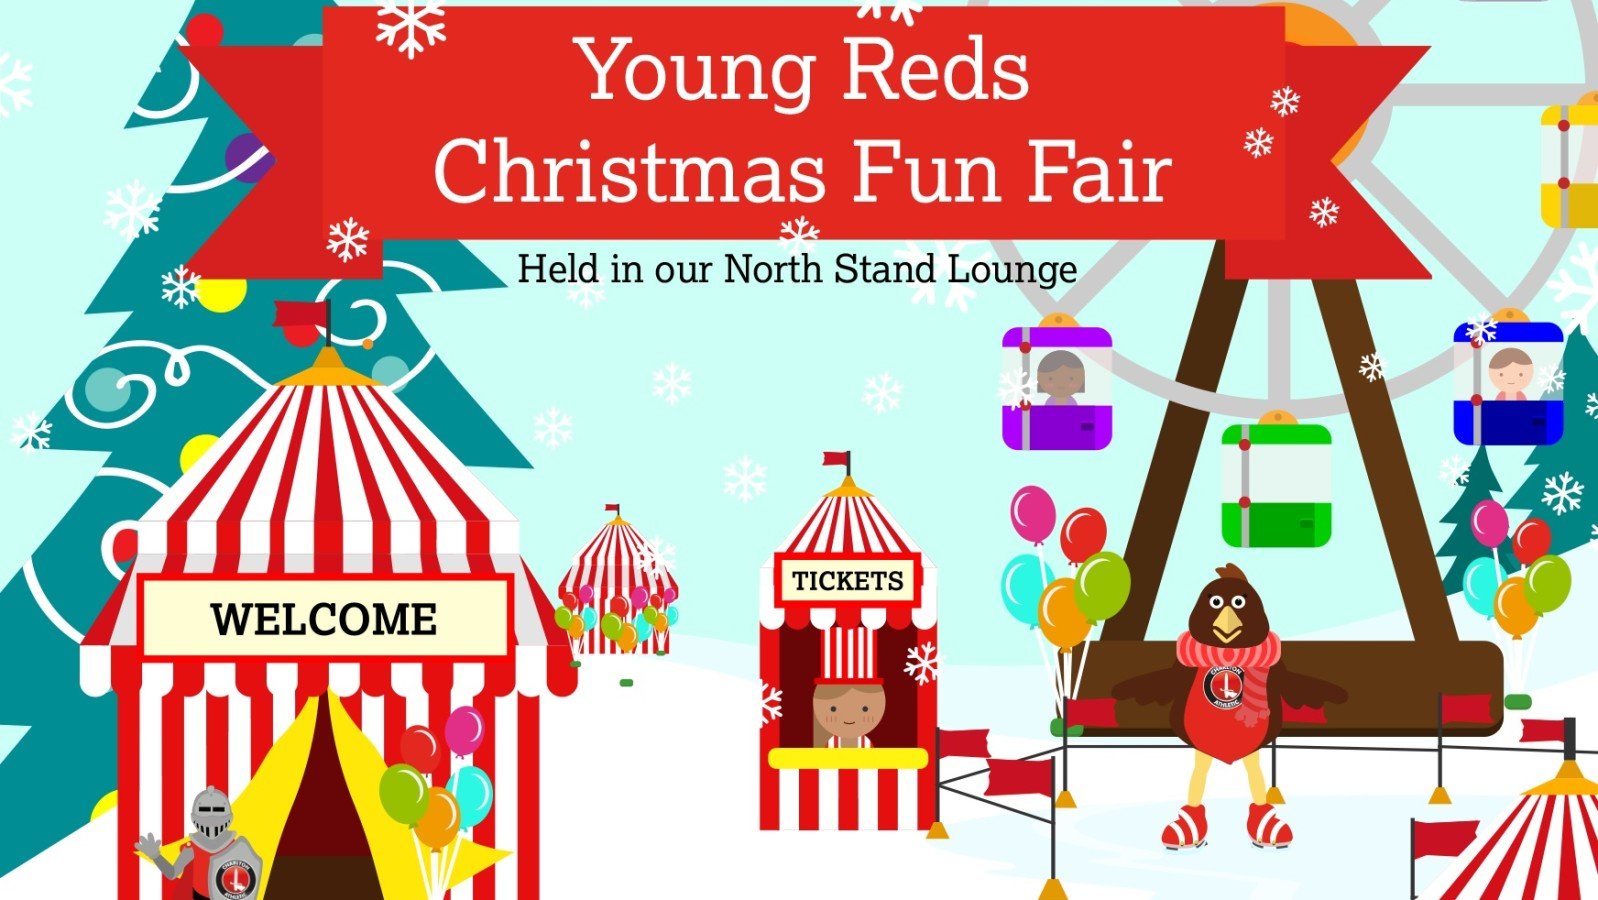 Welcome fair fans clipart image library library Last chance to book your place at the Young Reds Christmas ... image library library